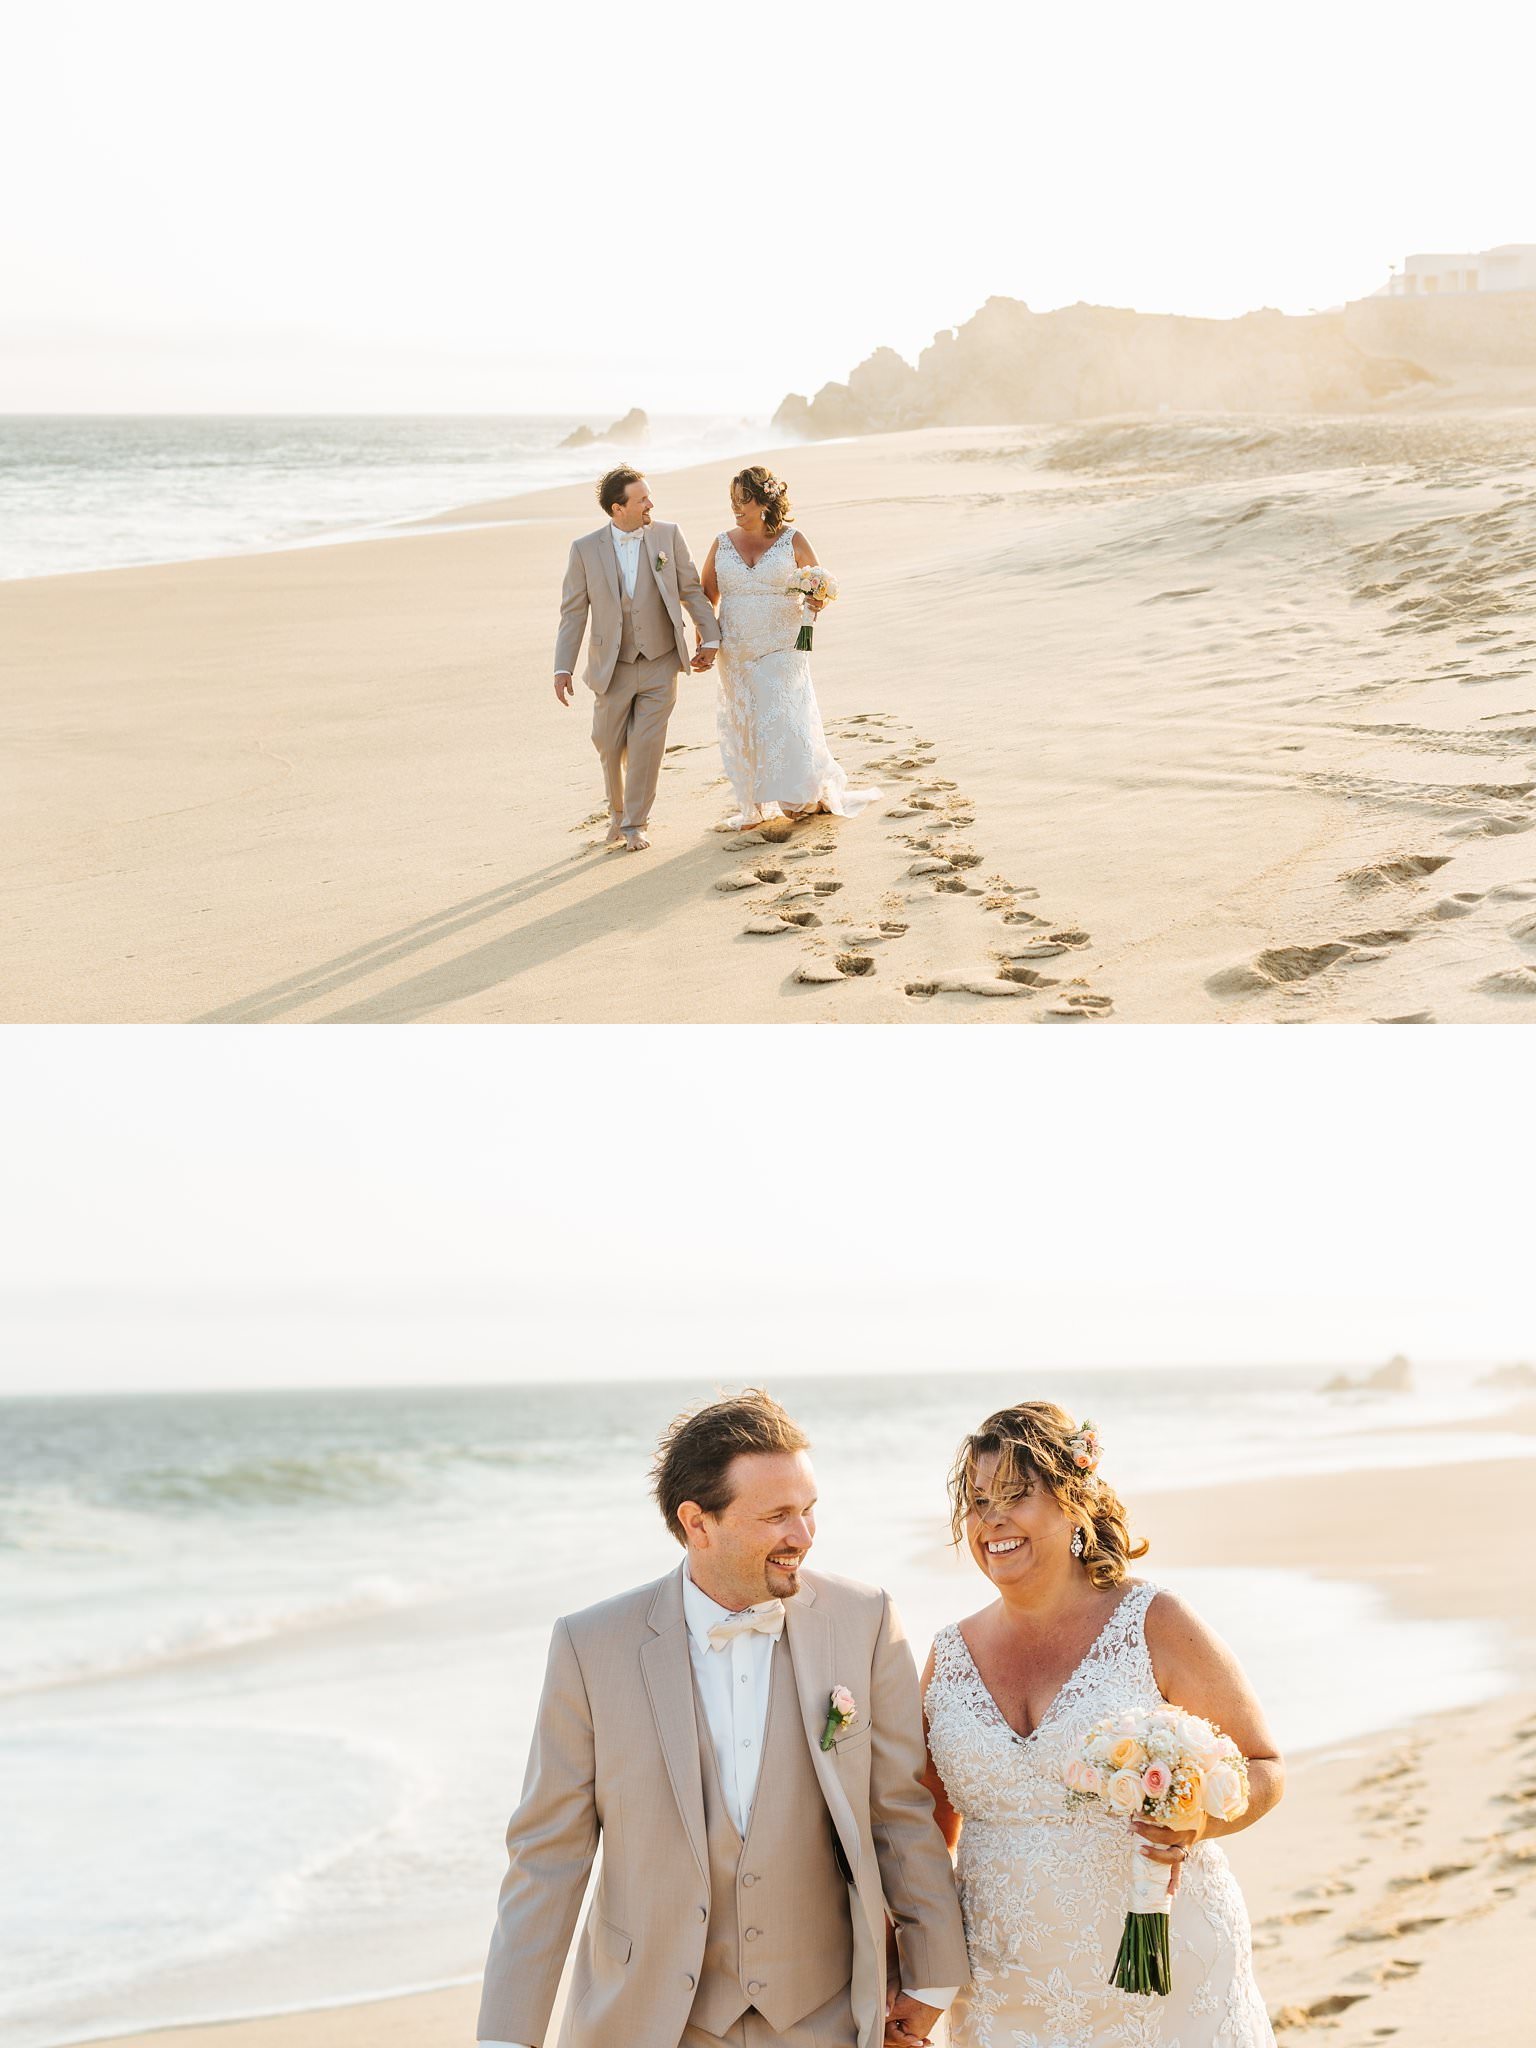 Bride and Groom on the beach in Mexico - Cabo San Lucas Destination Wedding - https://brittneyhannonphotography.com